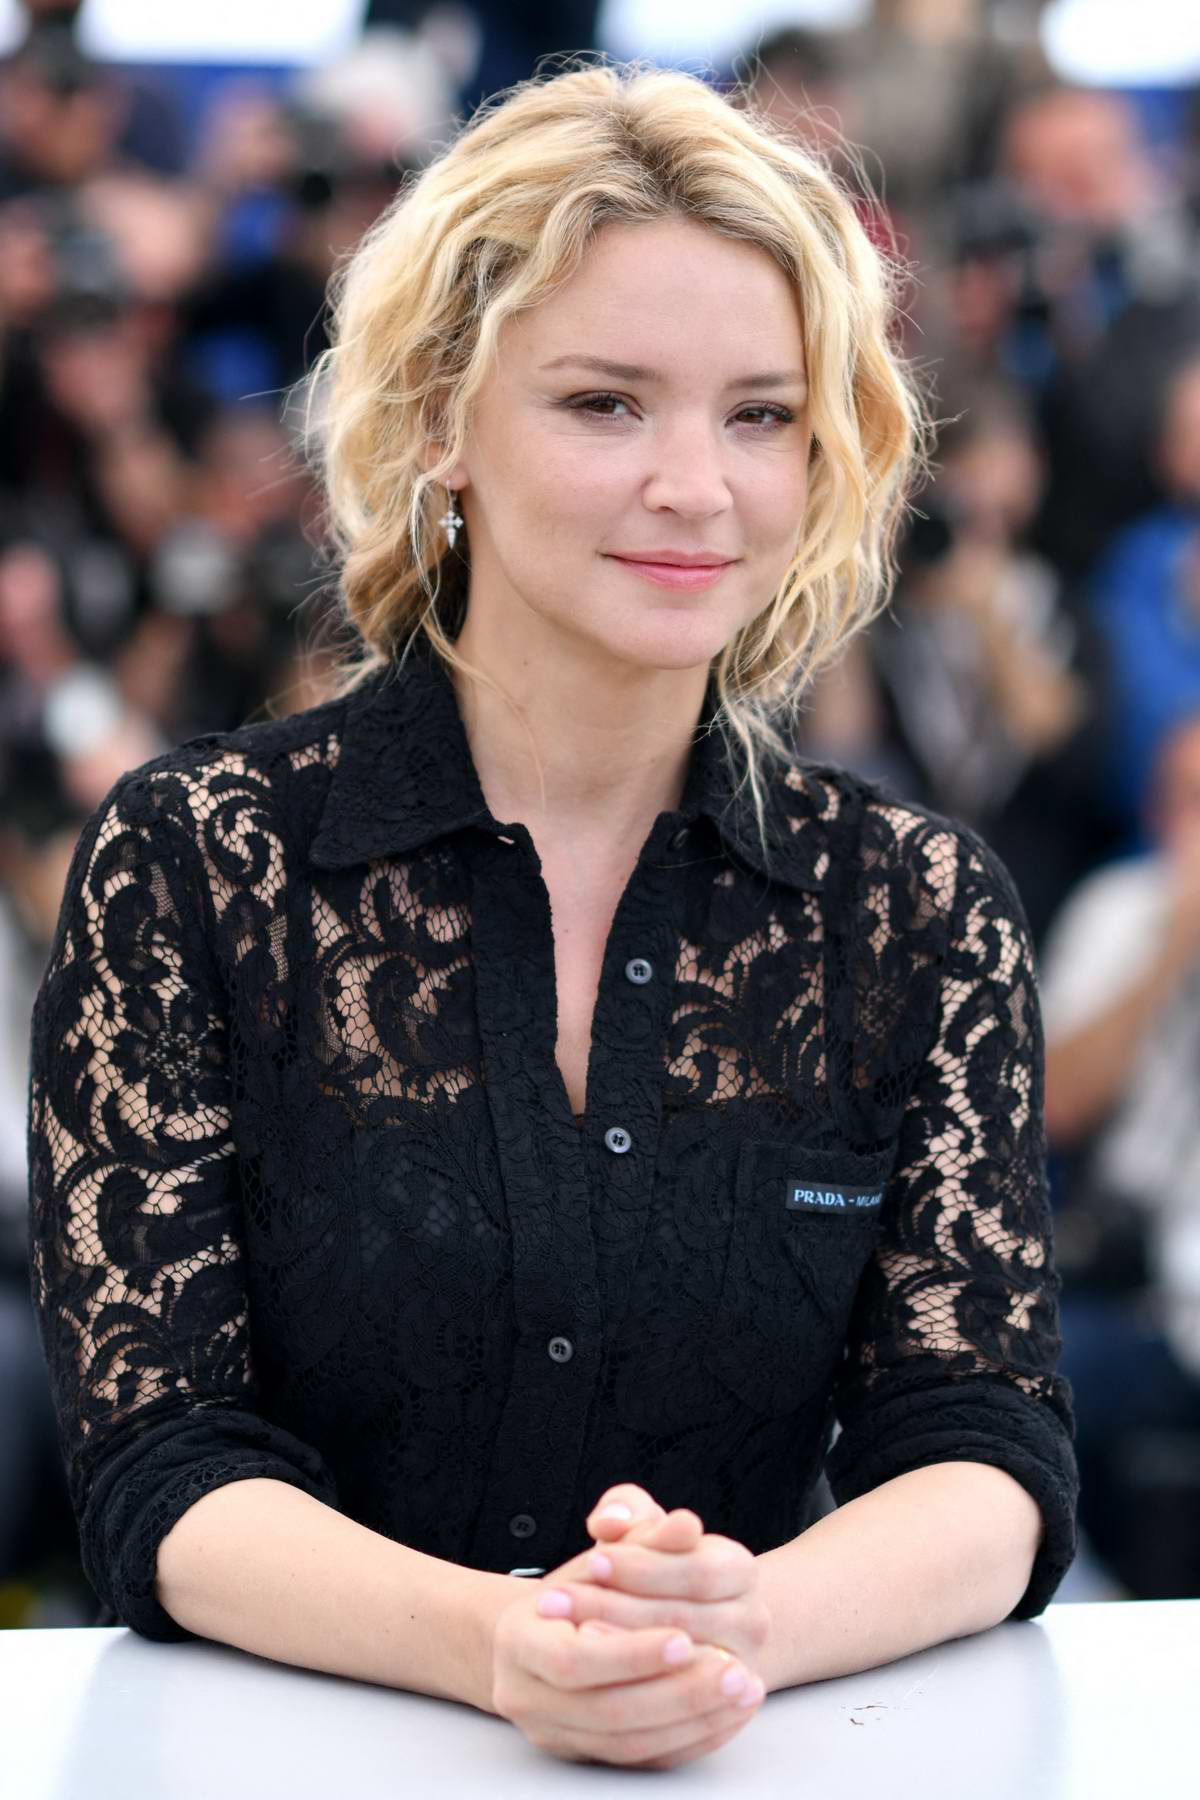 Virginie Efira attends the photocall for 'Sibyl' during the 72nd annual Cannes Film Festival in Cannes, France